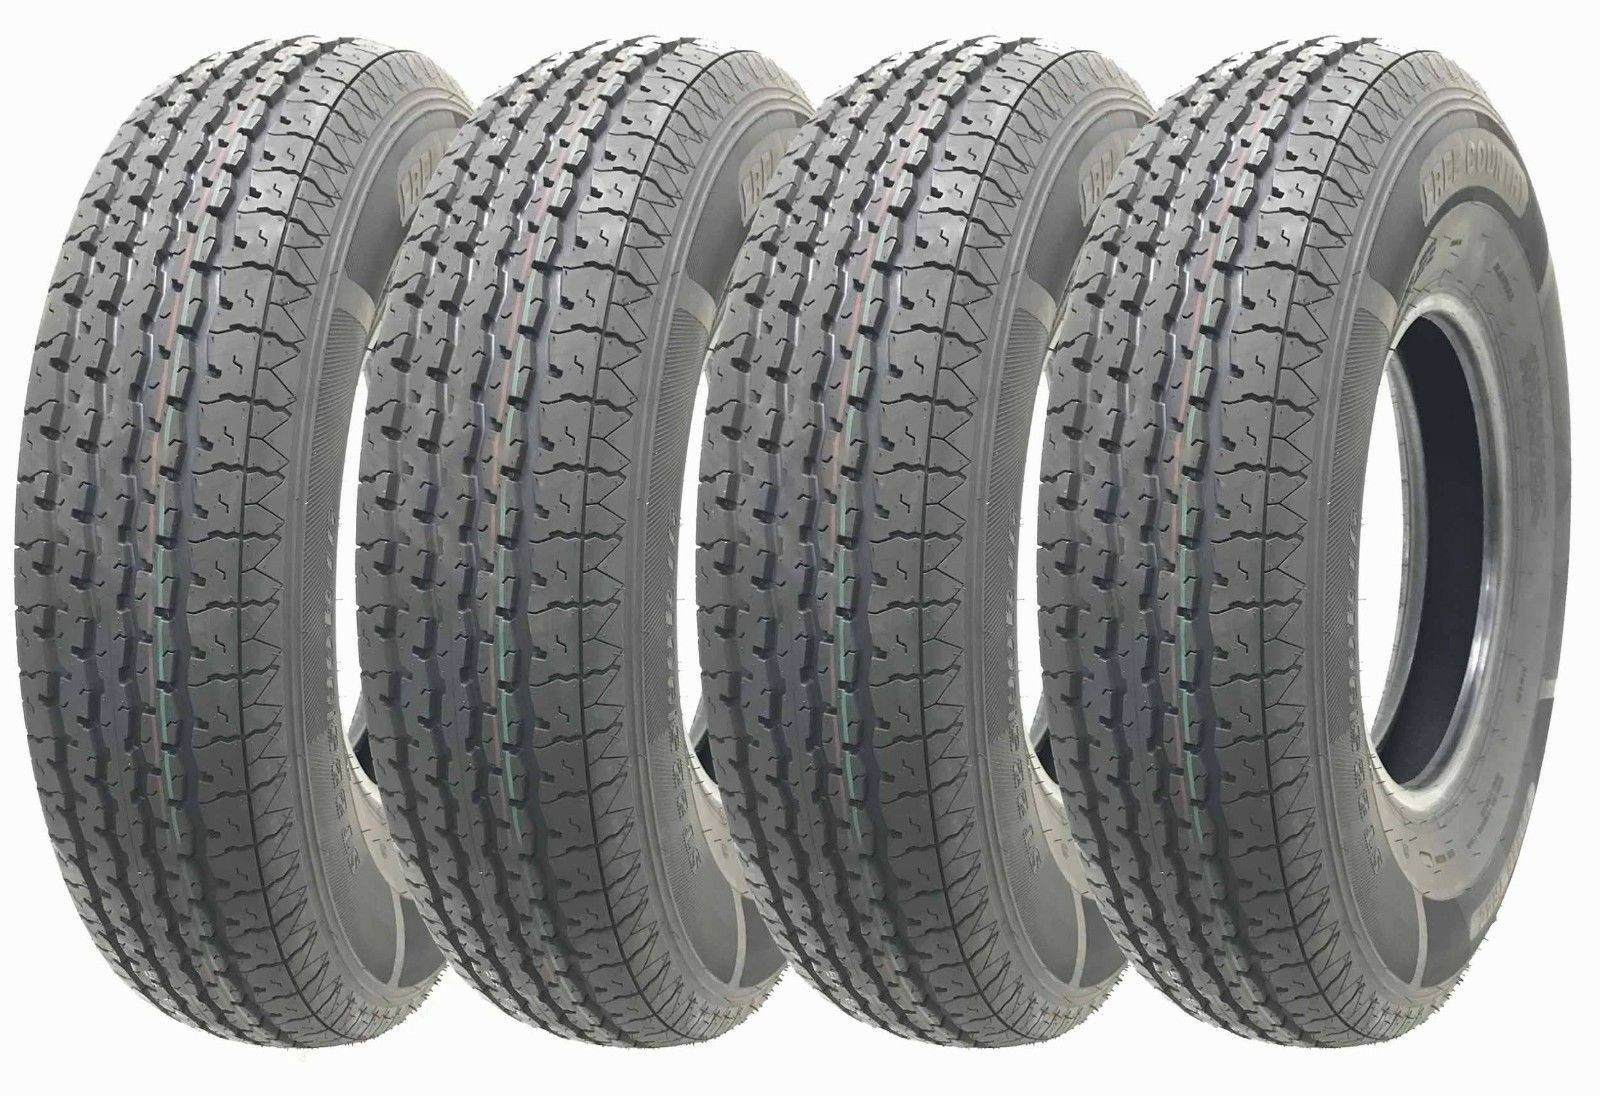 4 New Free Coutntry Trailer Radial Tires ST205 90R15 10PR Load Range E - 11081